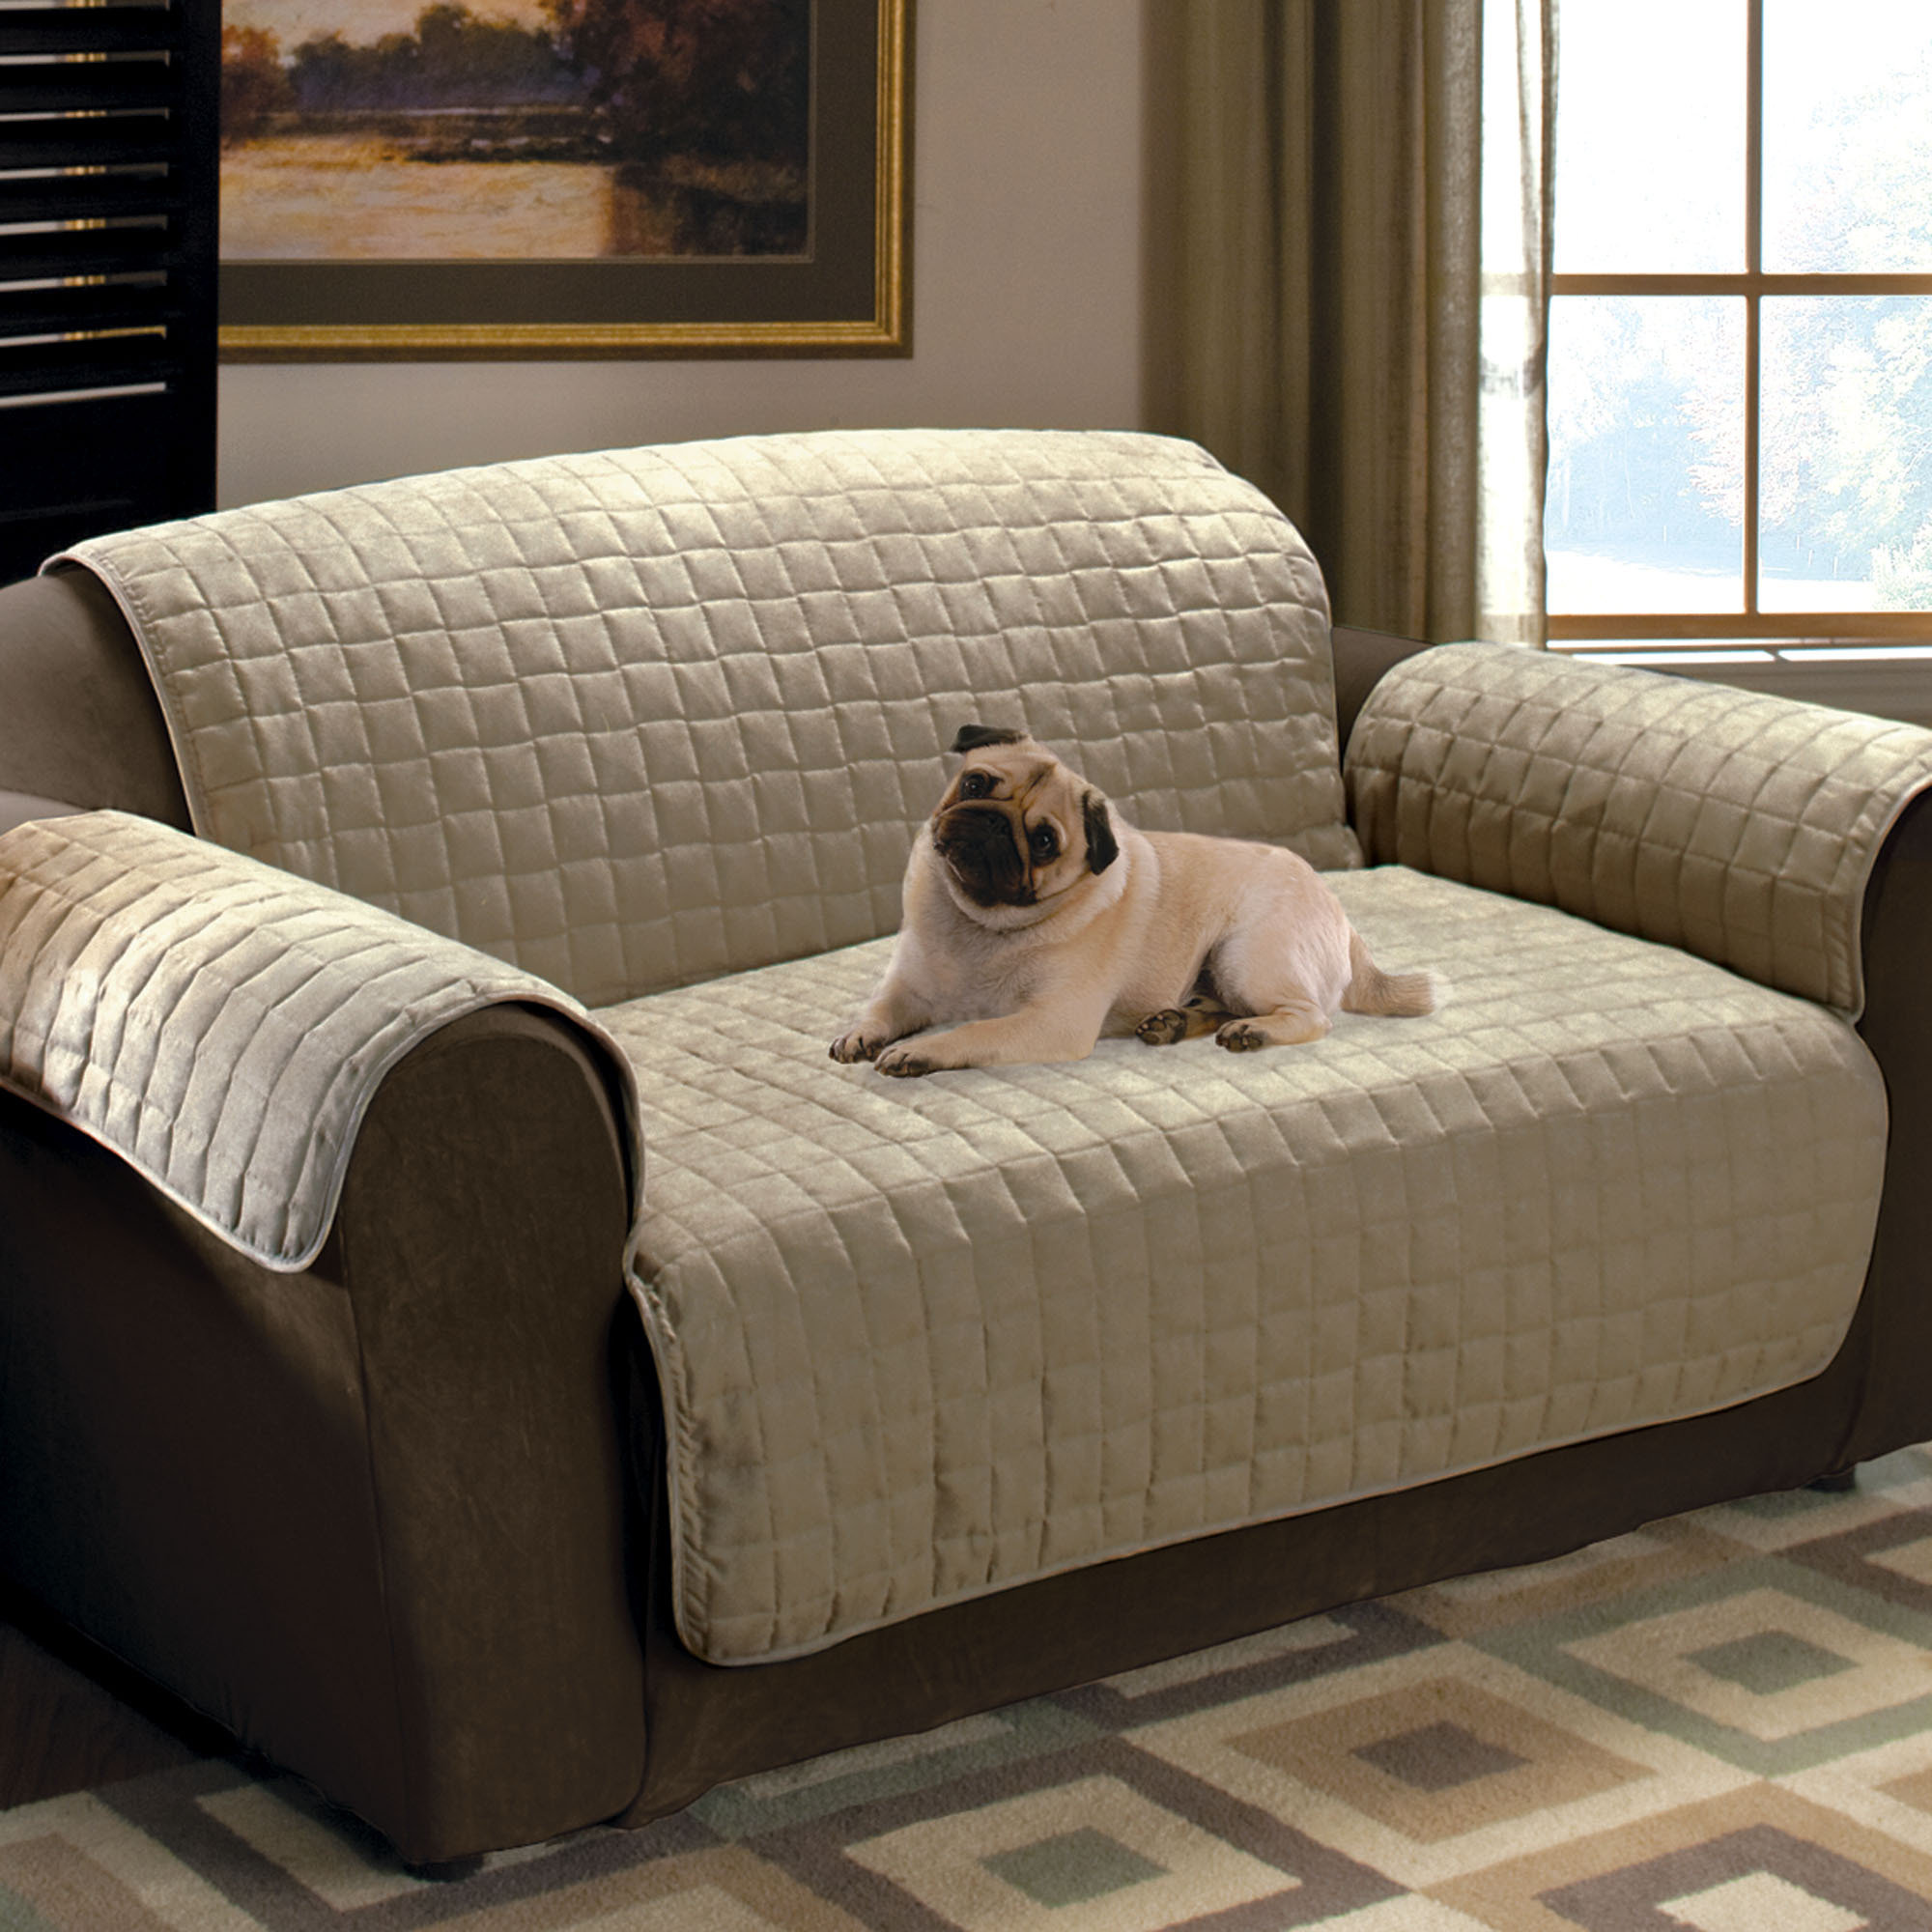 sectional sofa slipcovers in brown and cream for living room furniture ideas